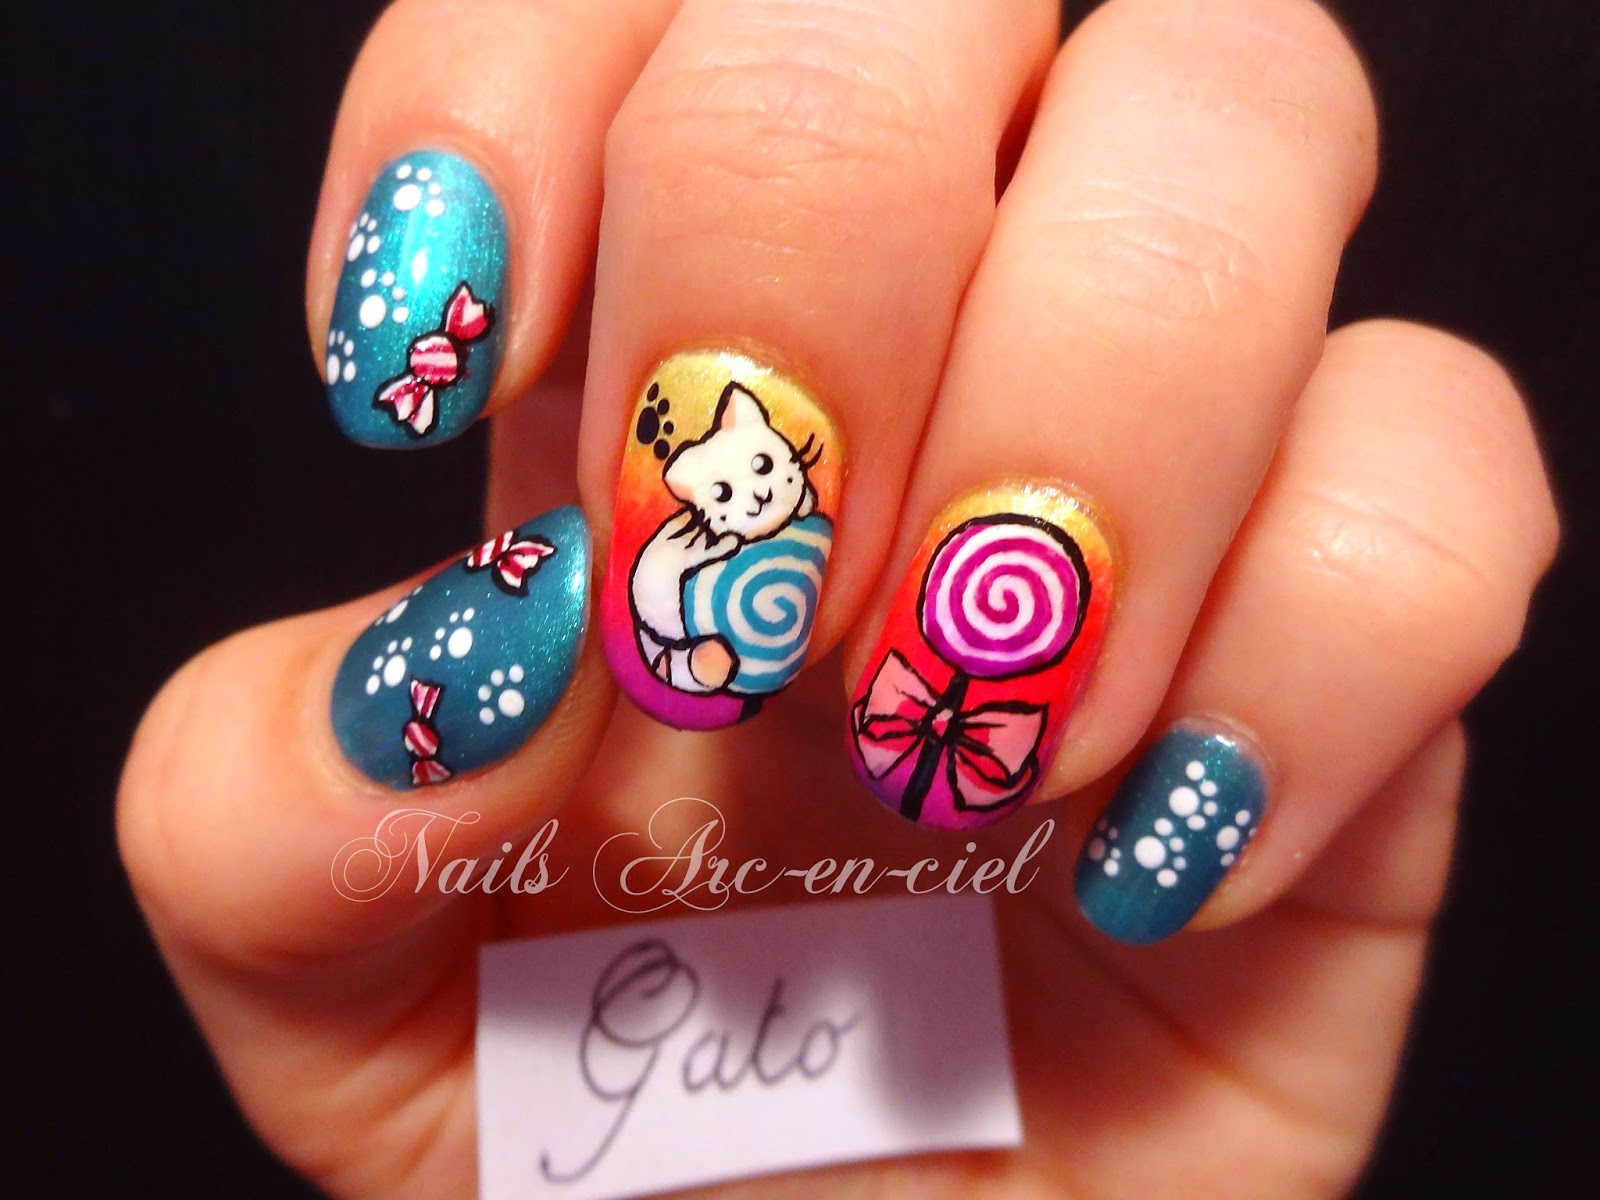 http://nails-arcenciel.blogspot.fr/2014/07/chat-gourmand.html